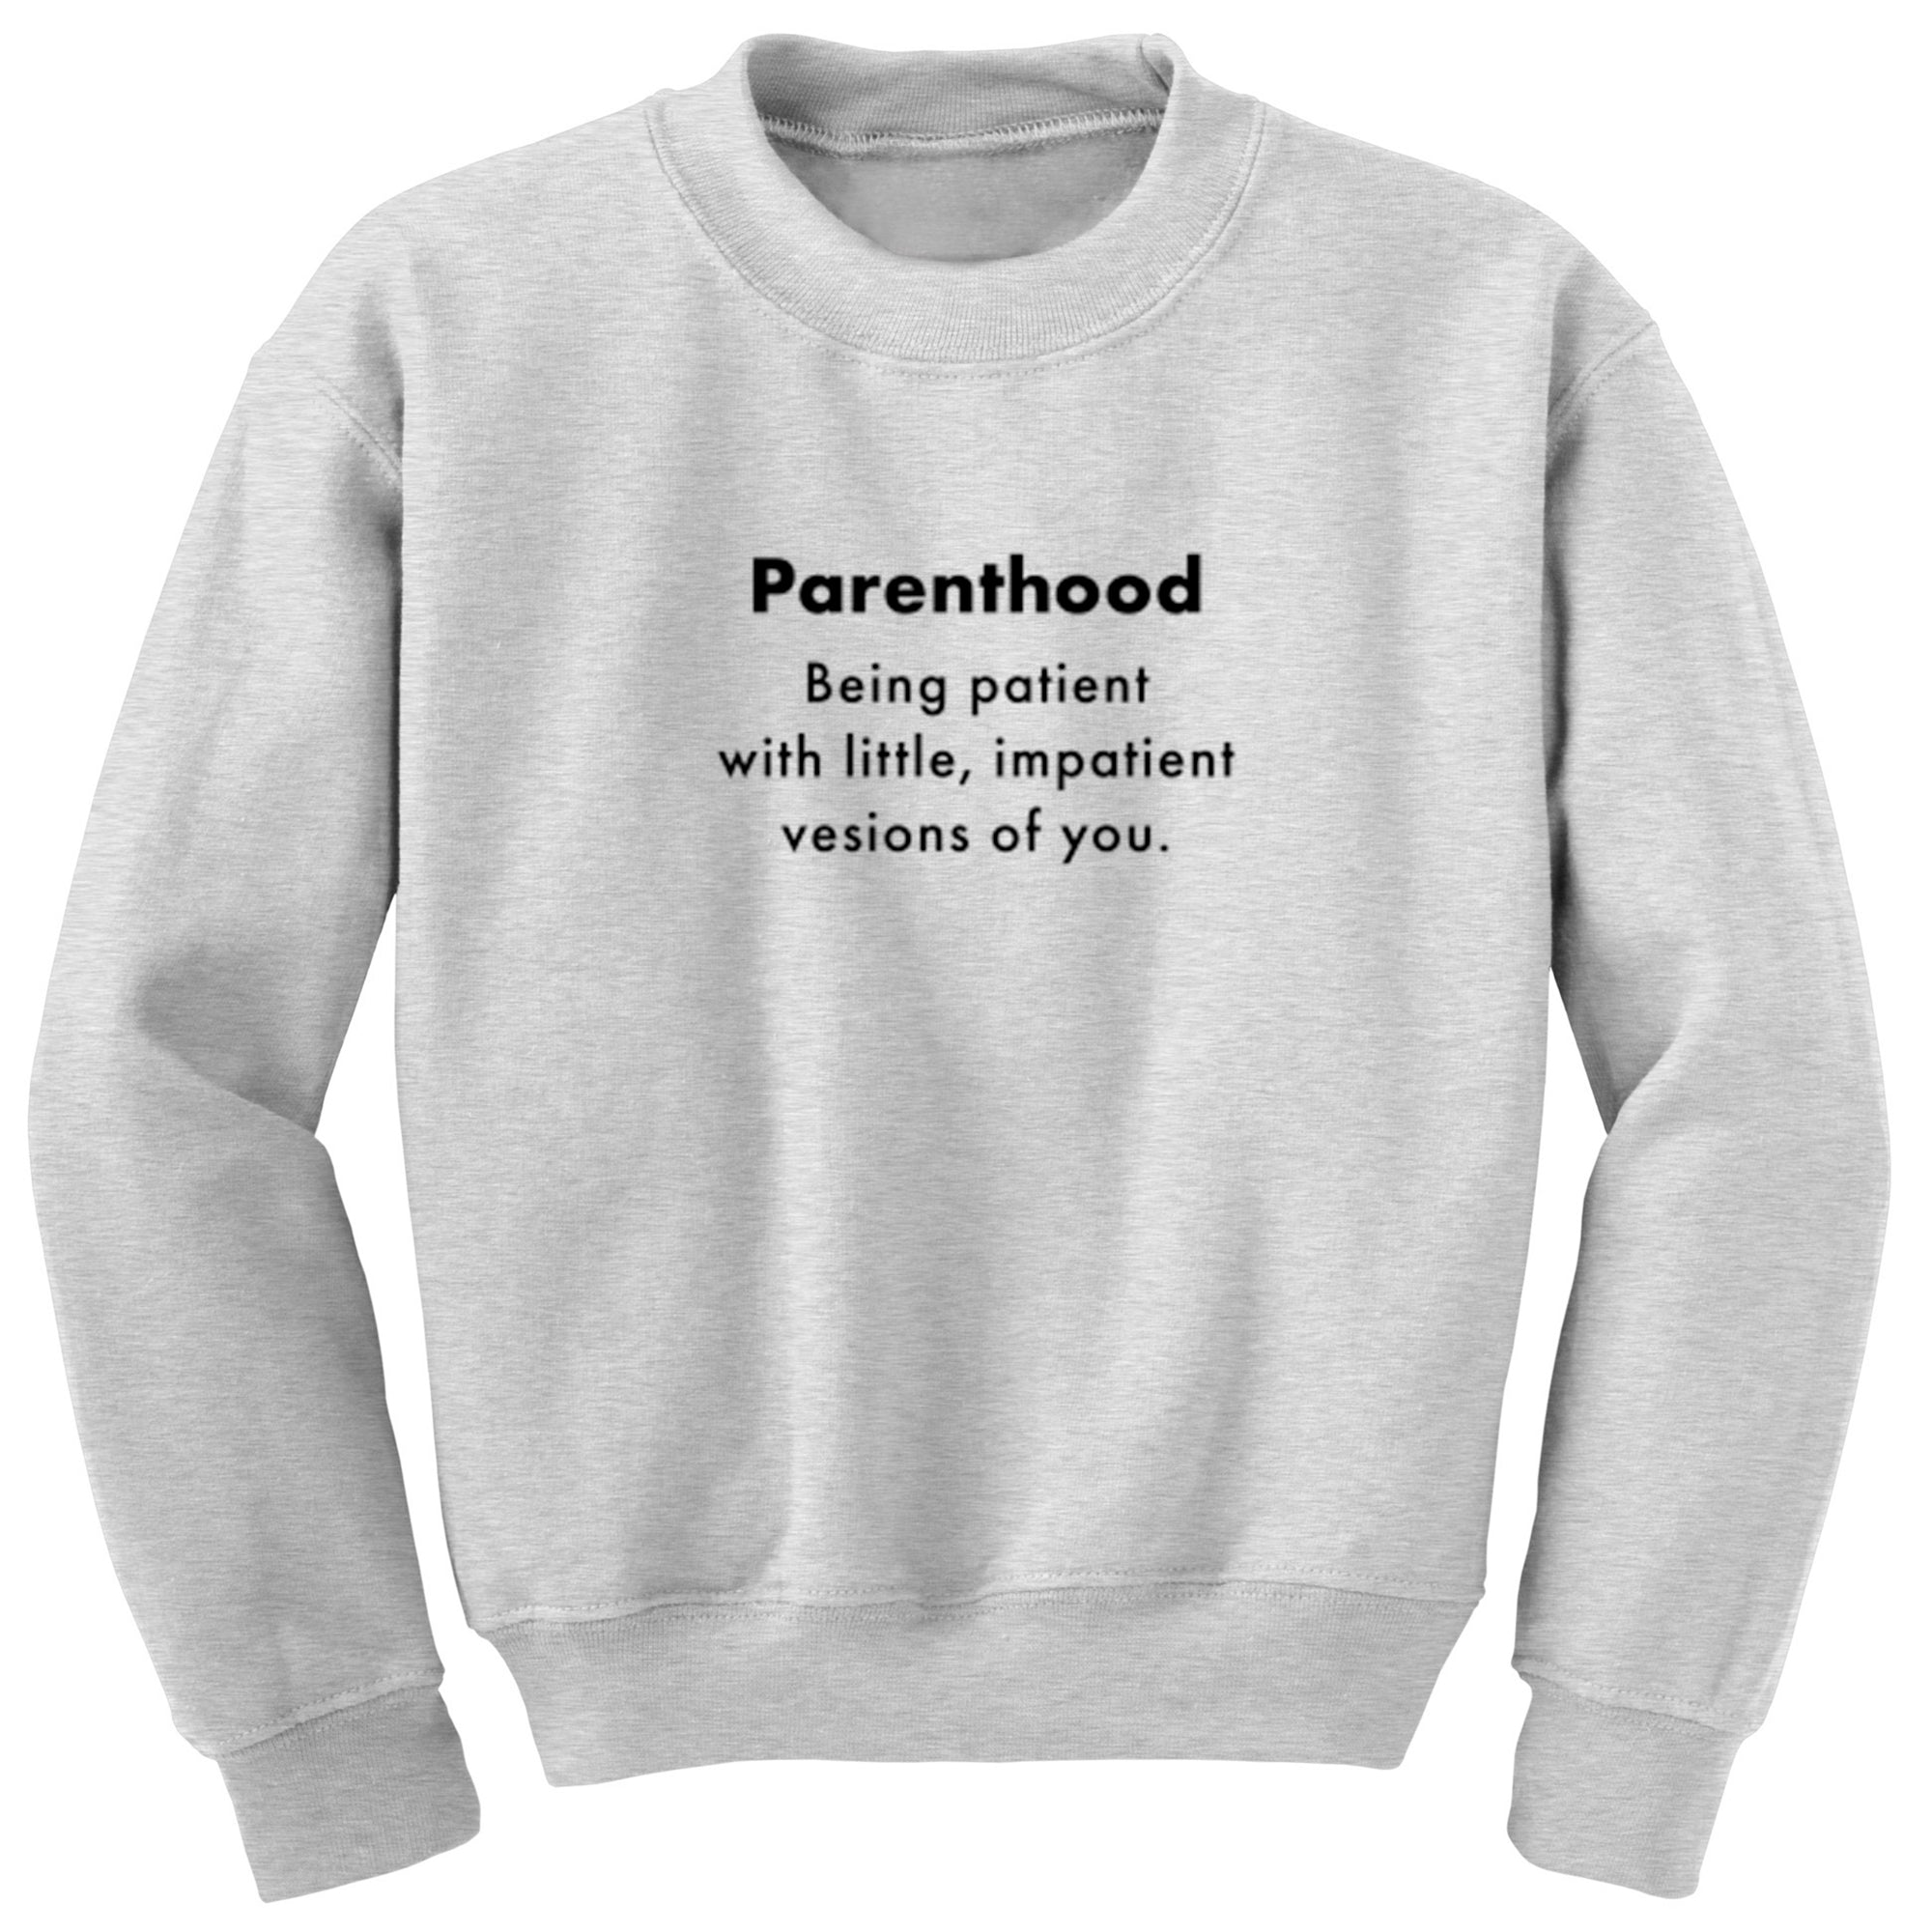 Parenthood Definition Unisex Jumper A0089 - Illustrated Identity Ltd.